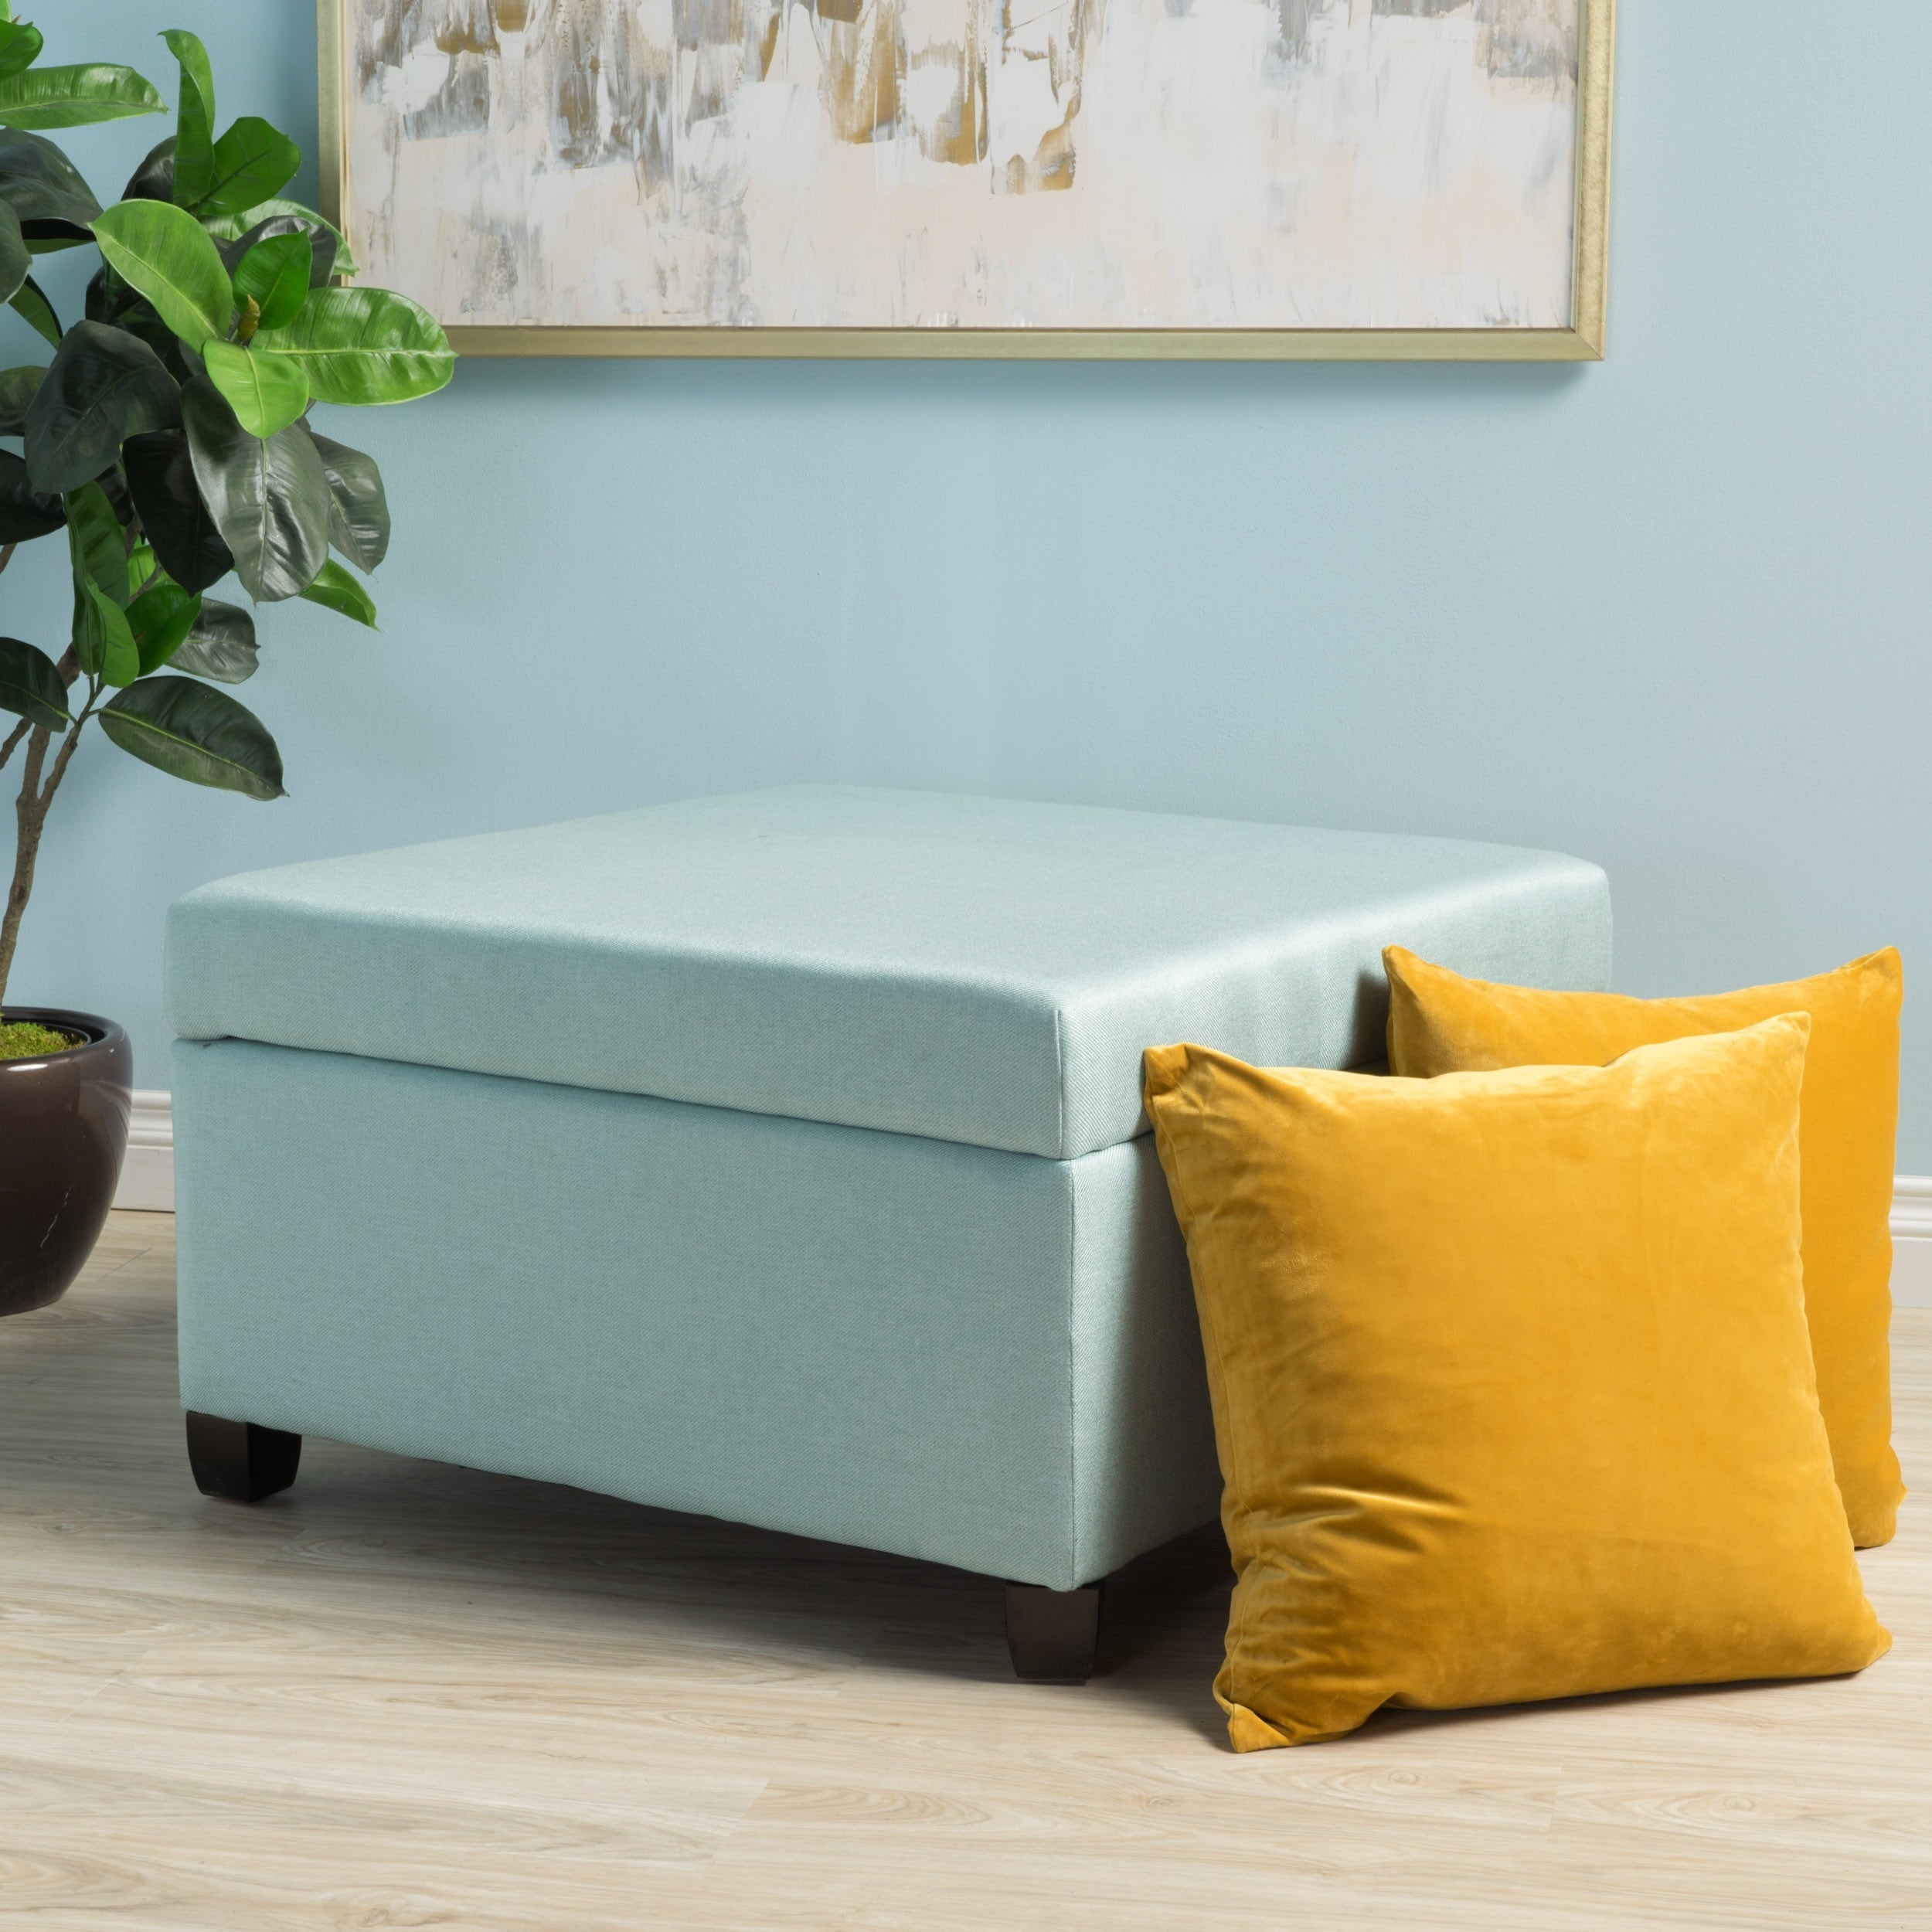 Shop Matteo Square Fabric Storage Ottoman By Christopher Knight Home   Free  Shipping Today   Overstock.com   12313176